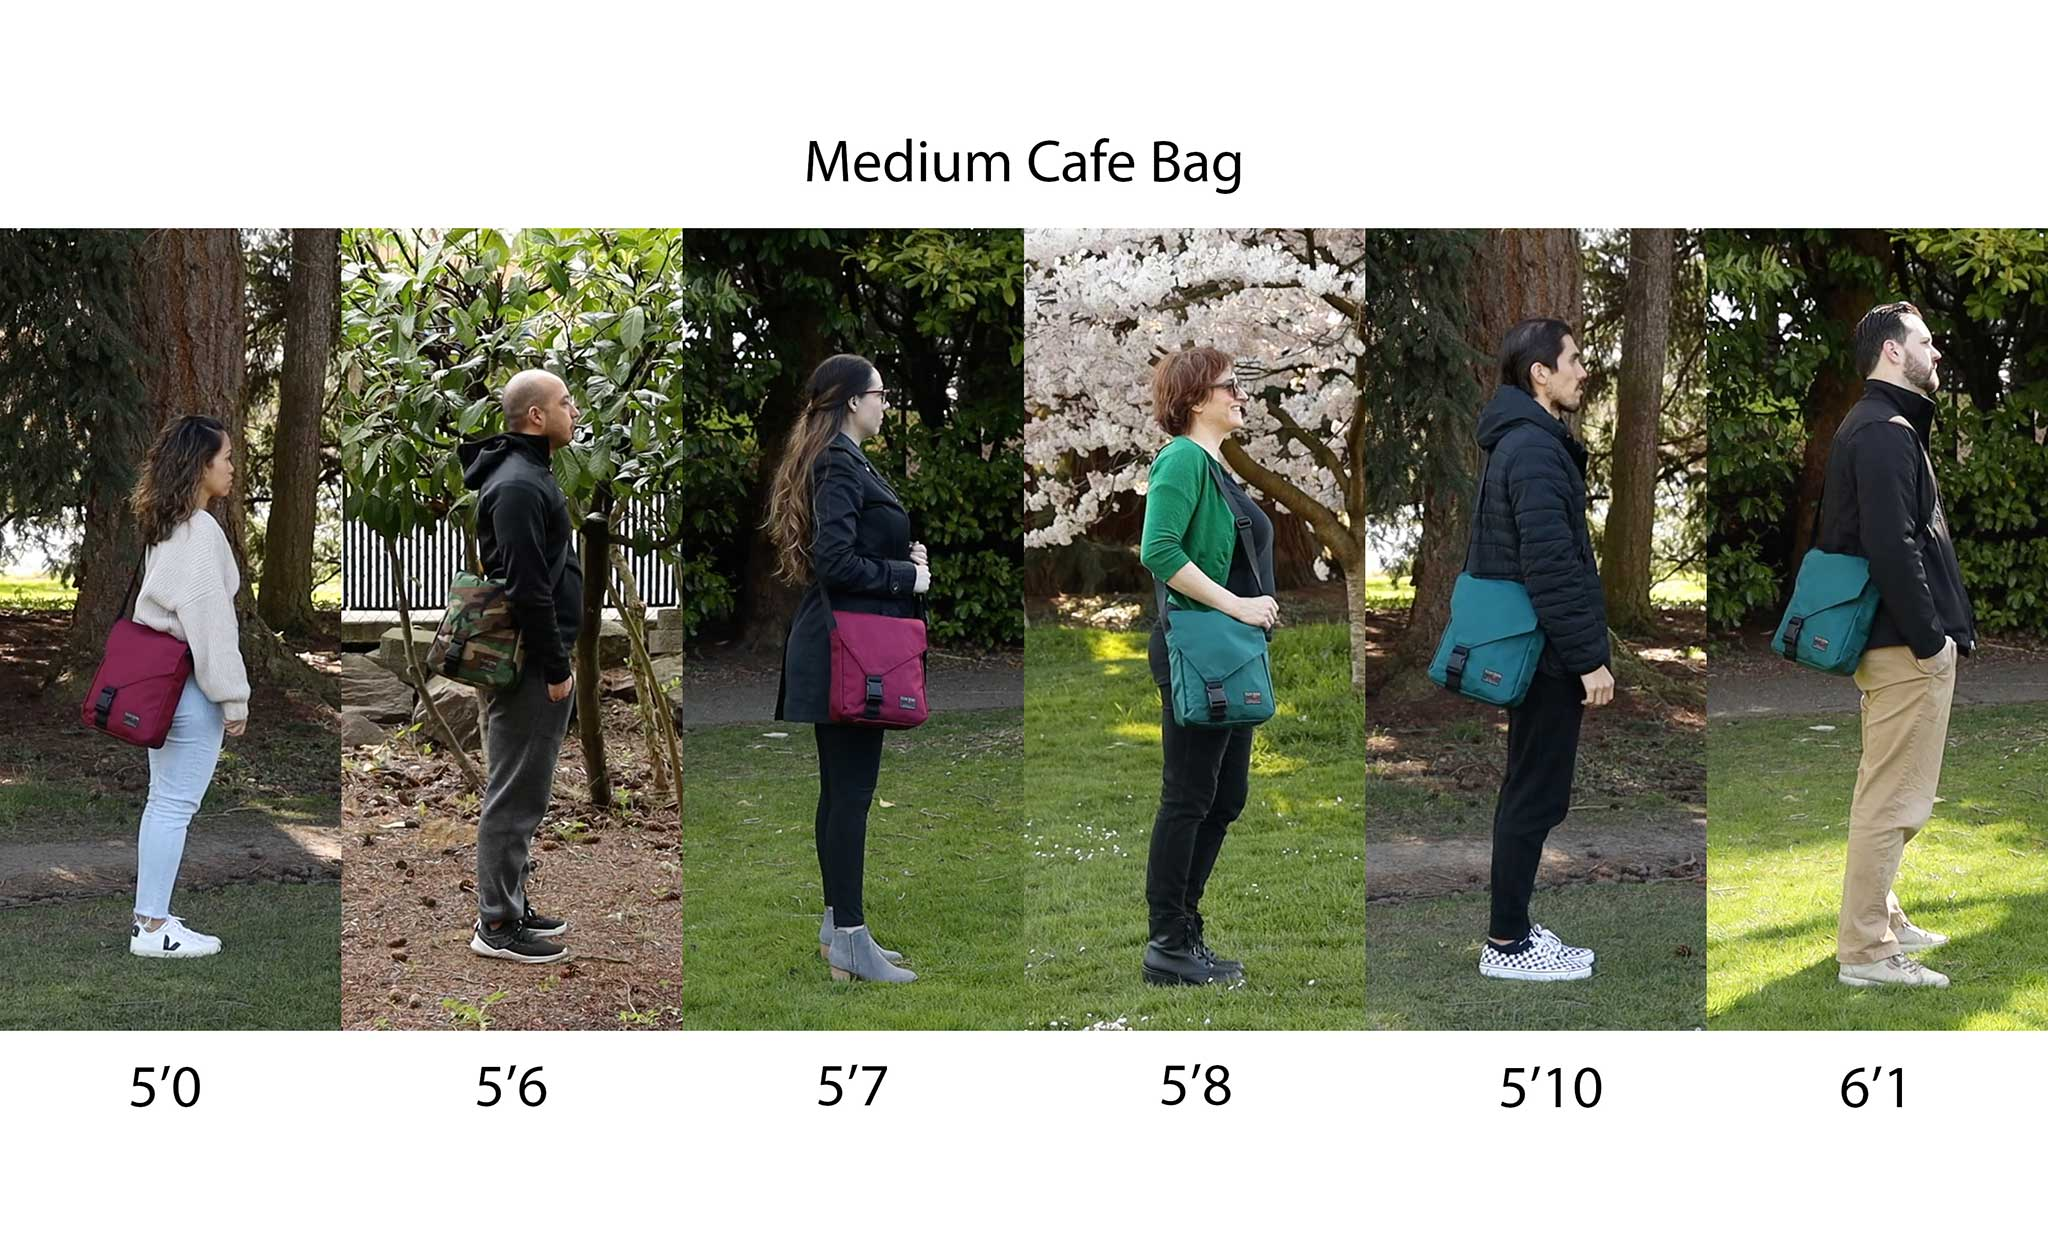 Medium Cafe Bag worn side-by-side by people of various heights